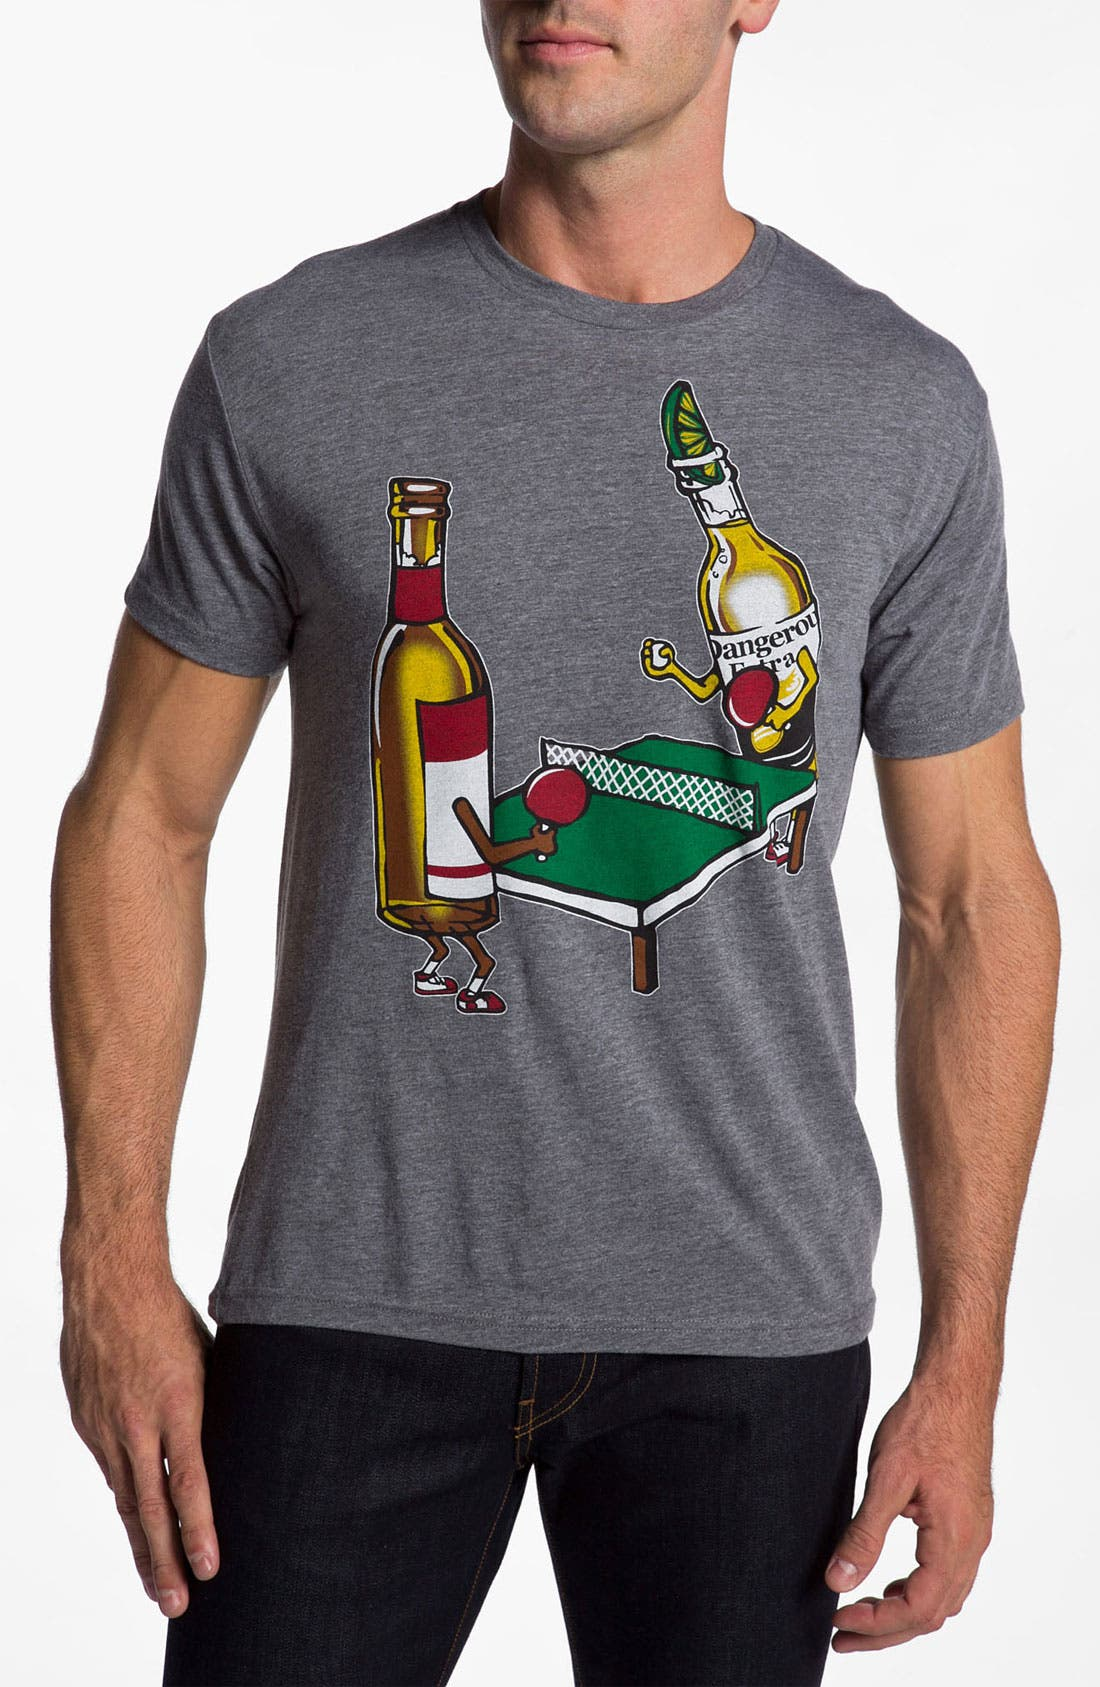 Alternate Image 1 Selected - Kid Dangerous Grime Couture 'Beer Pong' Graphic T-Shirt